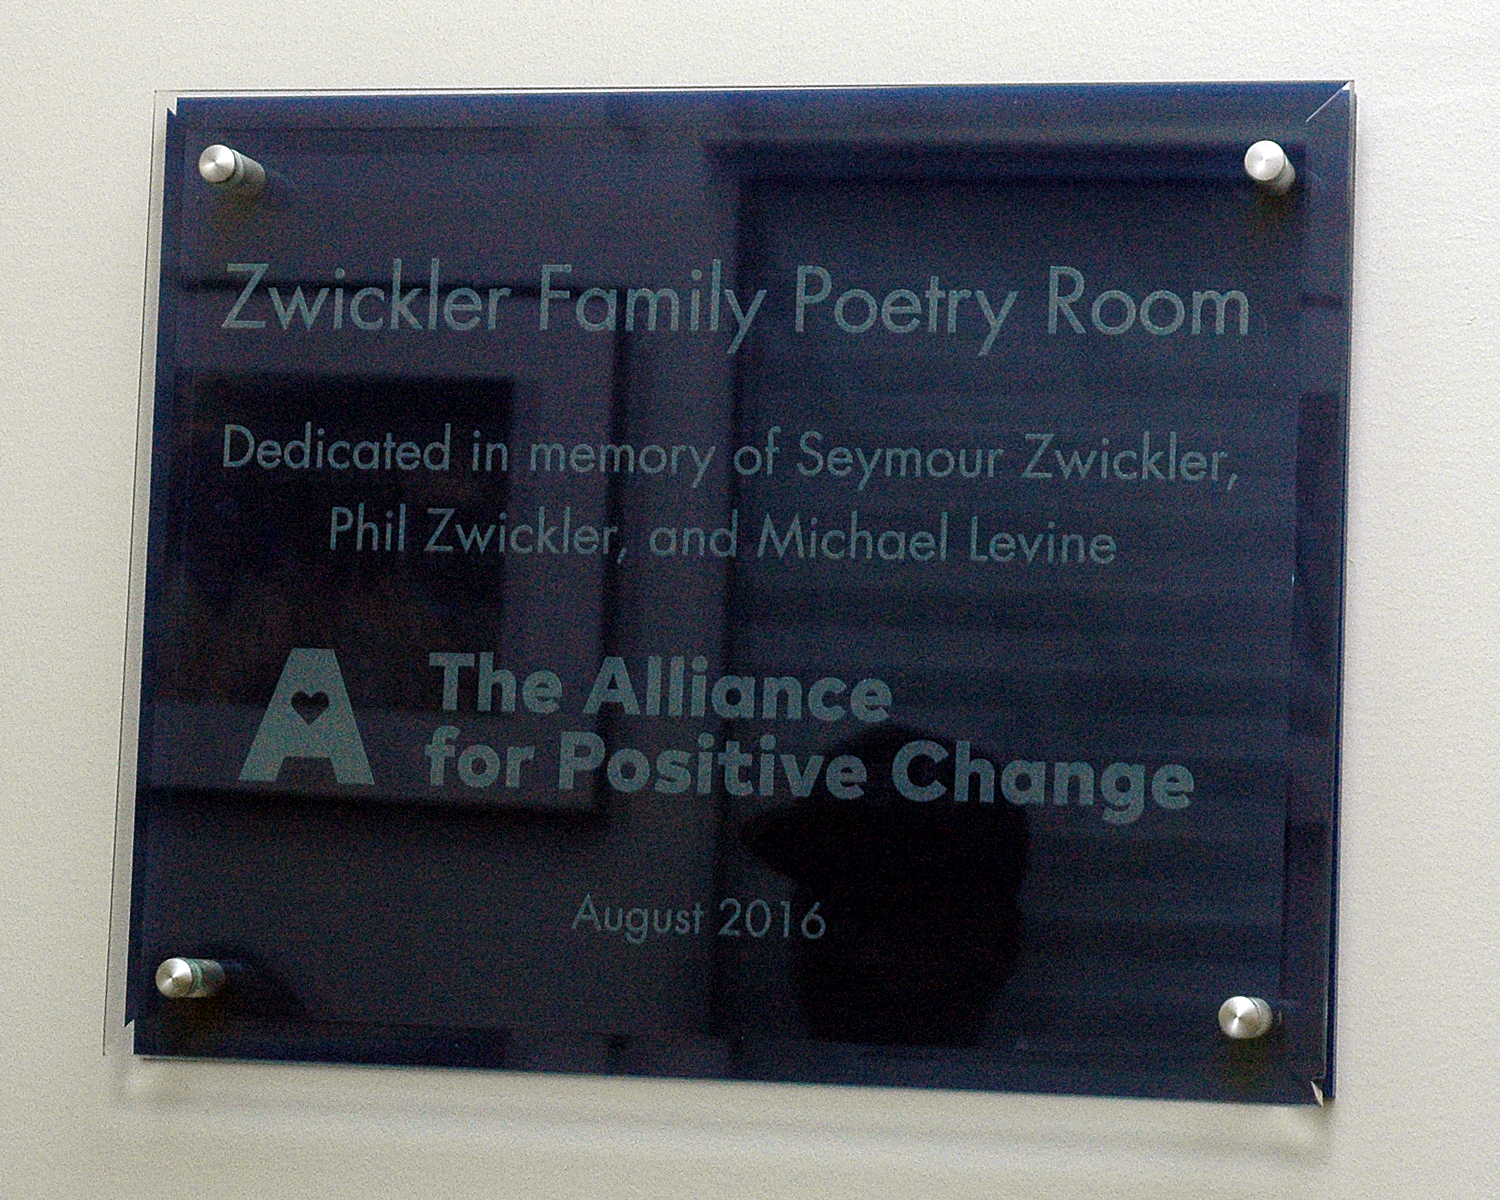 Zwickler Family Poetry Room Plaque